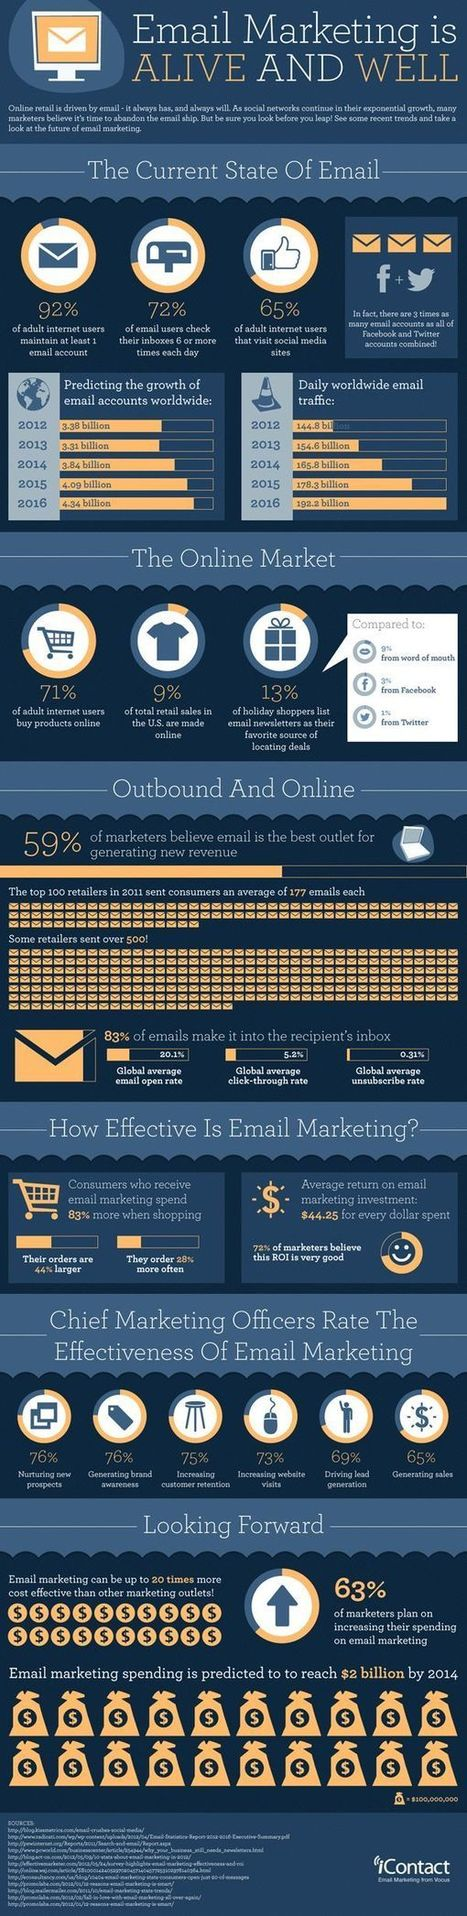 bouloboulo | Email marketing | Scoop.it